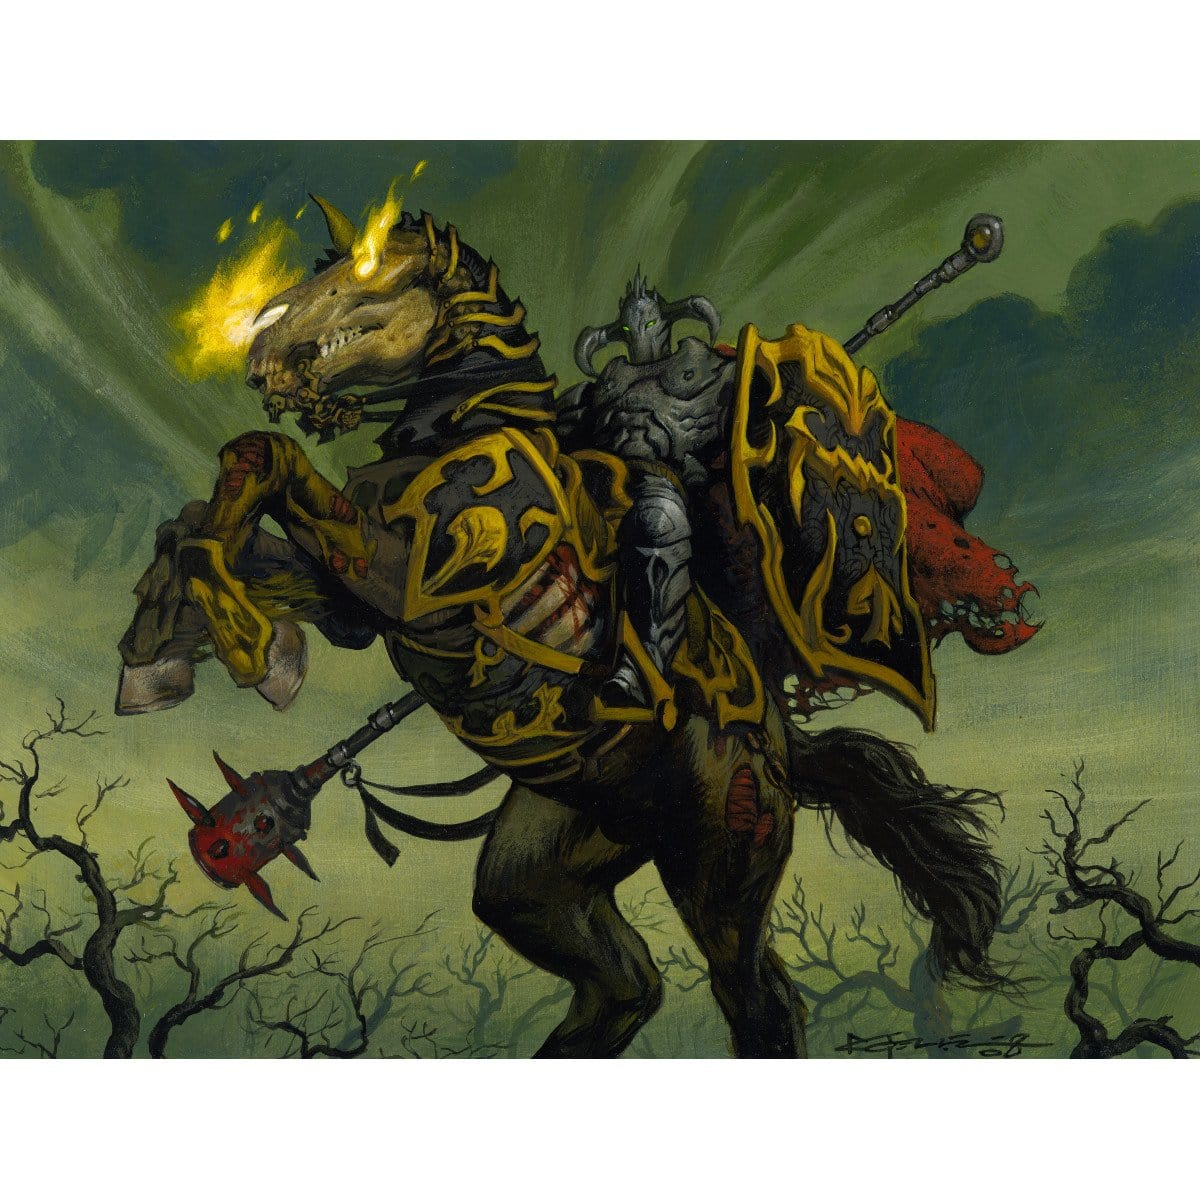 Black Knight Print - Print - Original Magic Art - Accessories for Magic the Gathering and other card games